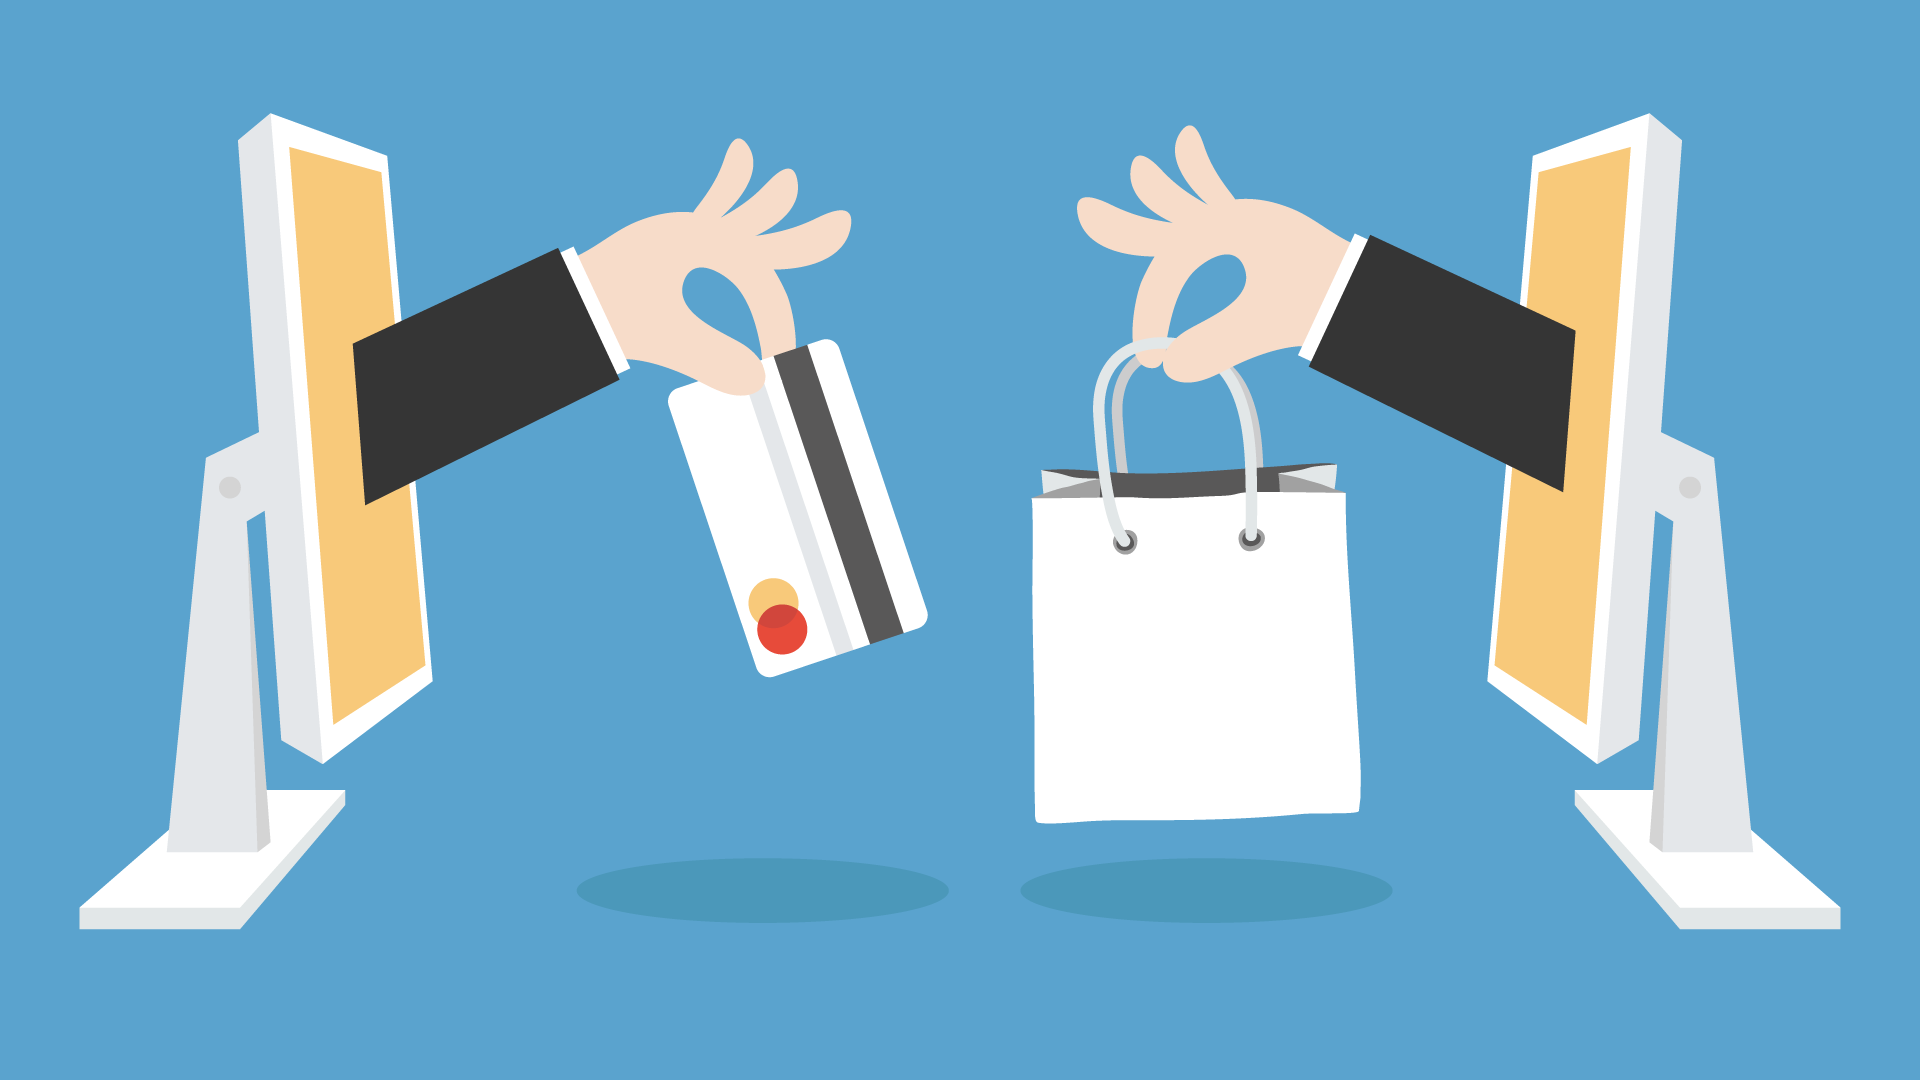 Study: 62% of shoppers that struggle to complete purchases abandon their carts